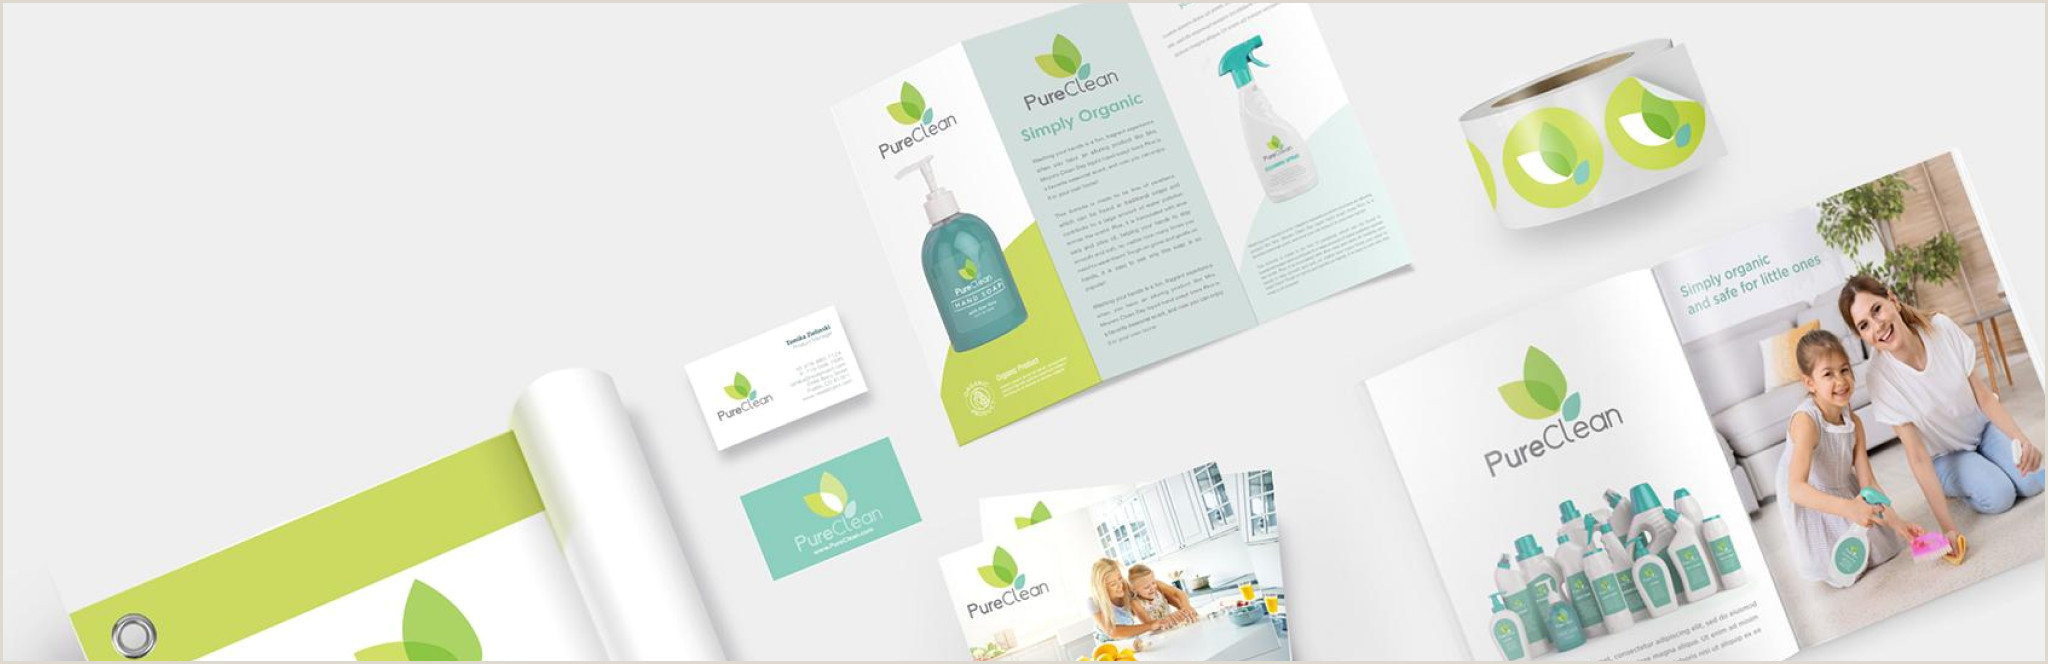 Best Website To Order Business Cards Printplace High Quality Line Printing Services